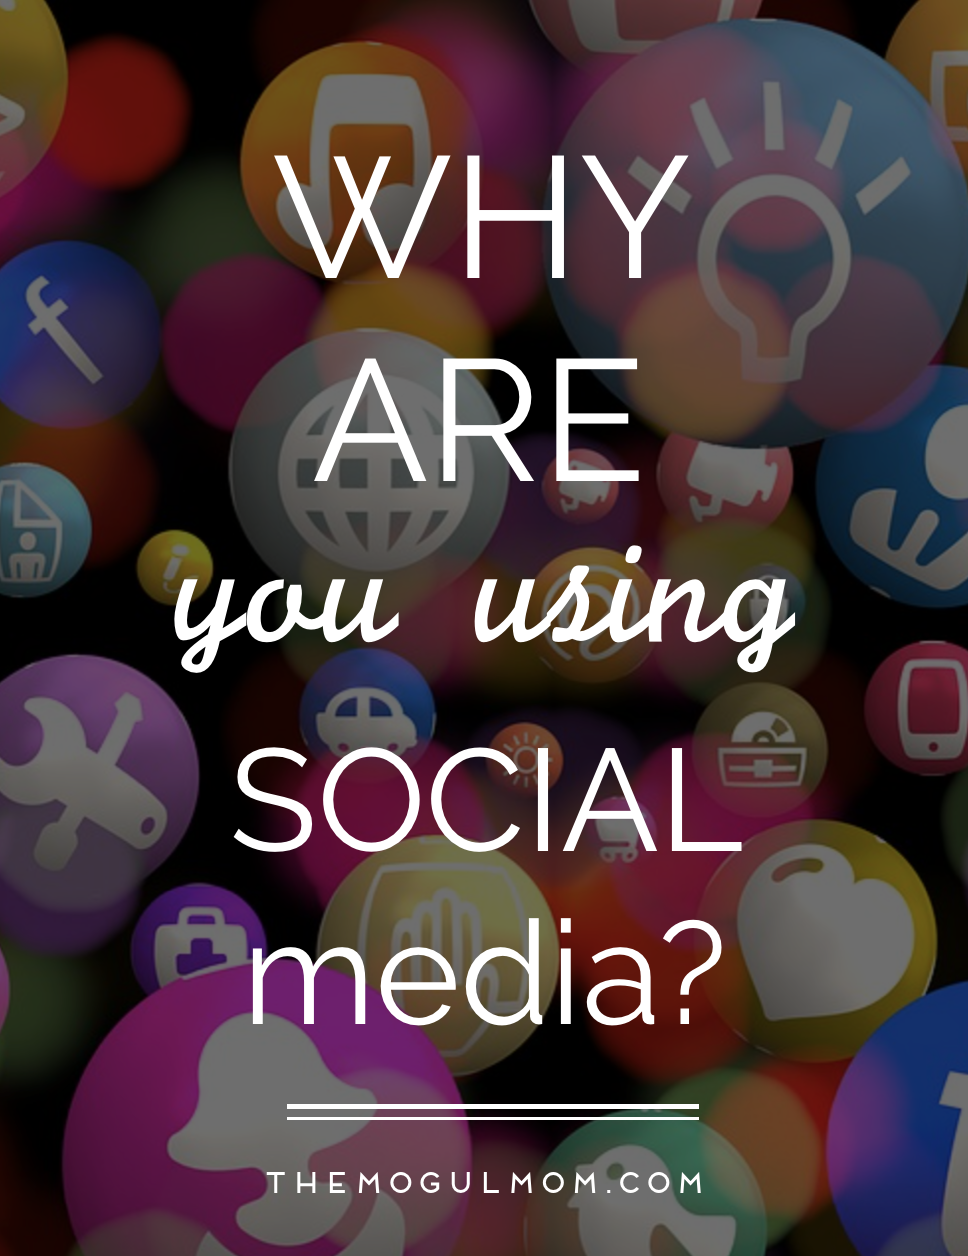 WHY are you using social media?